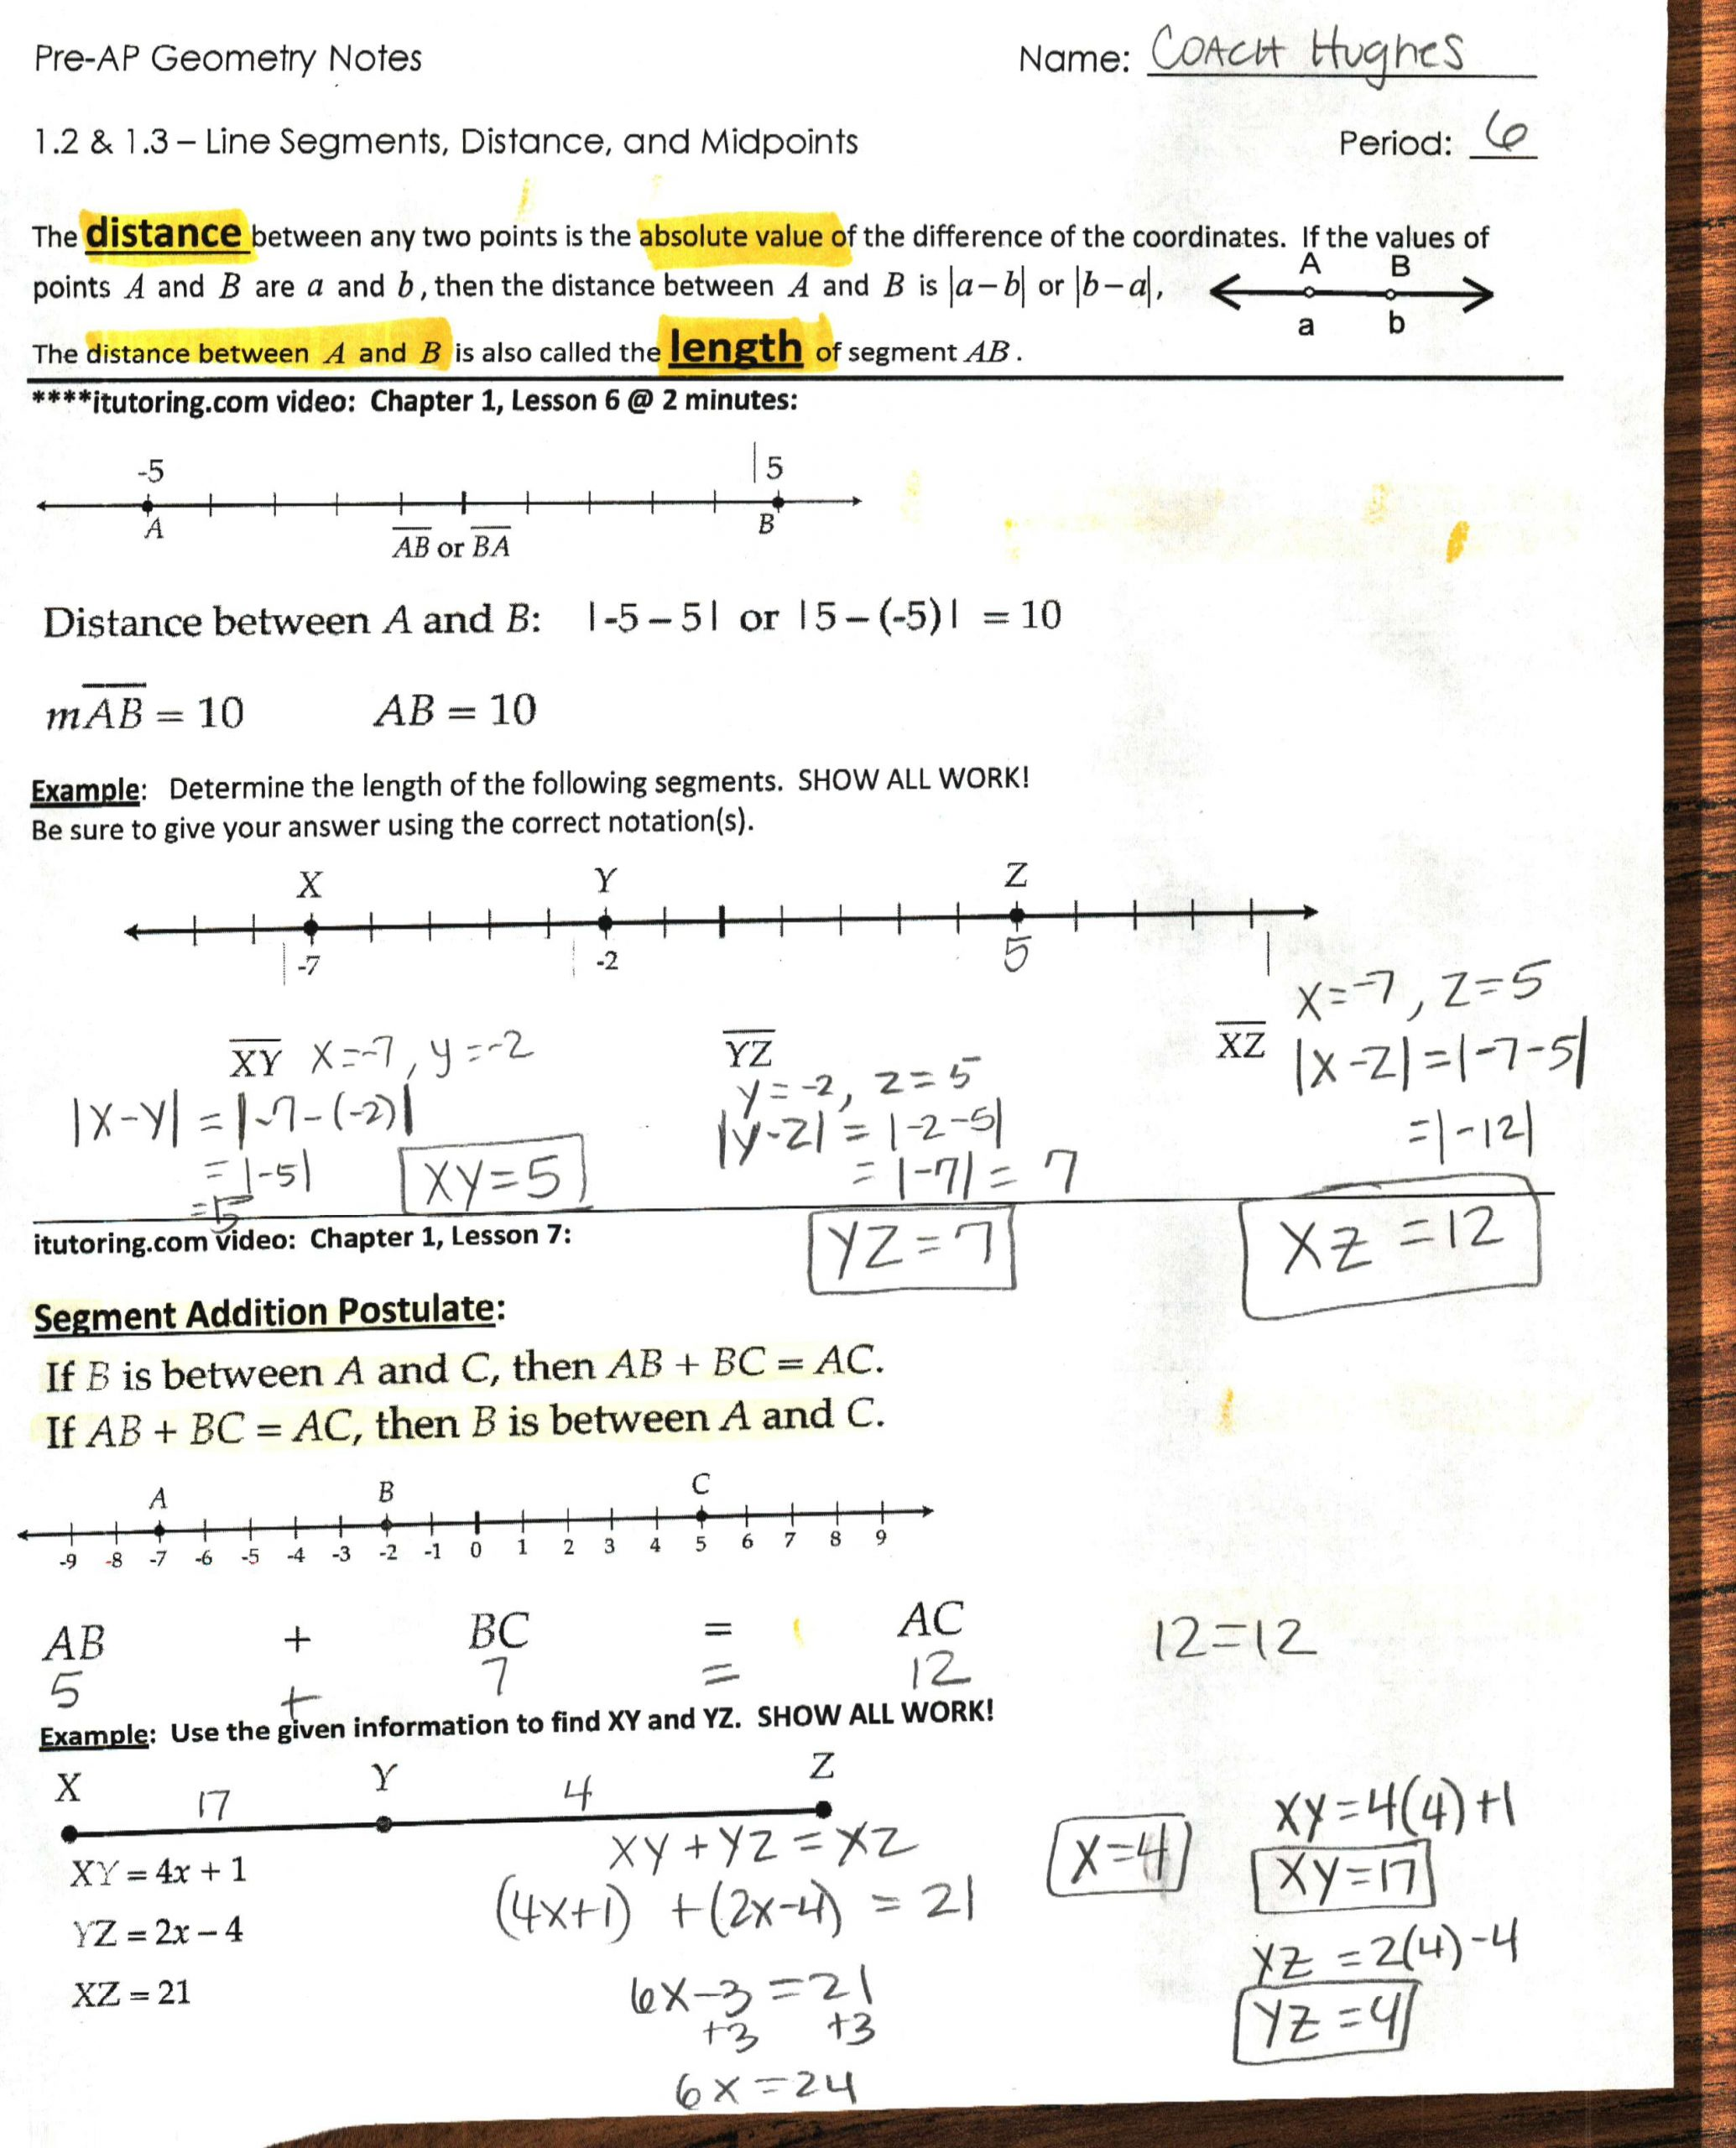 Distance and Midpoint Worksheet Answers 1st Six Weeks Coach Hughes Website